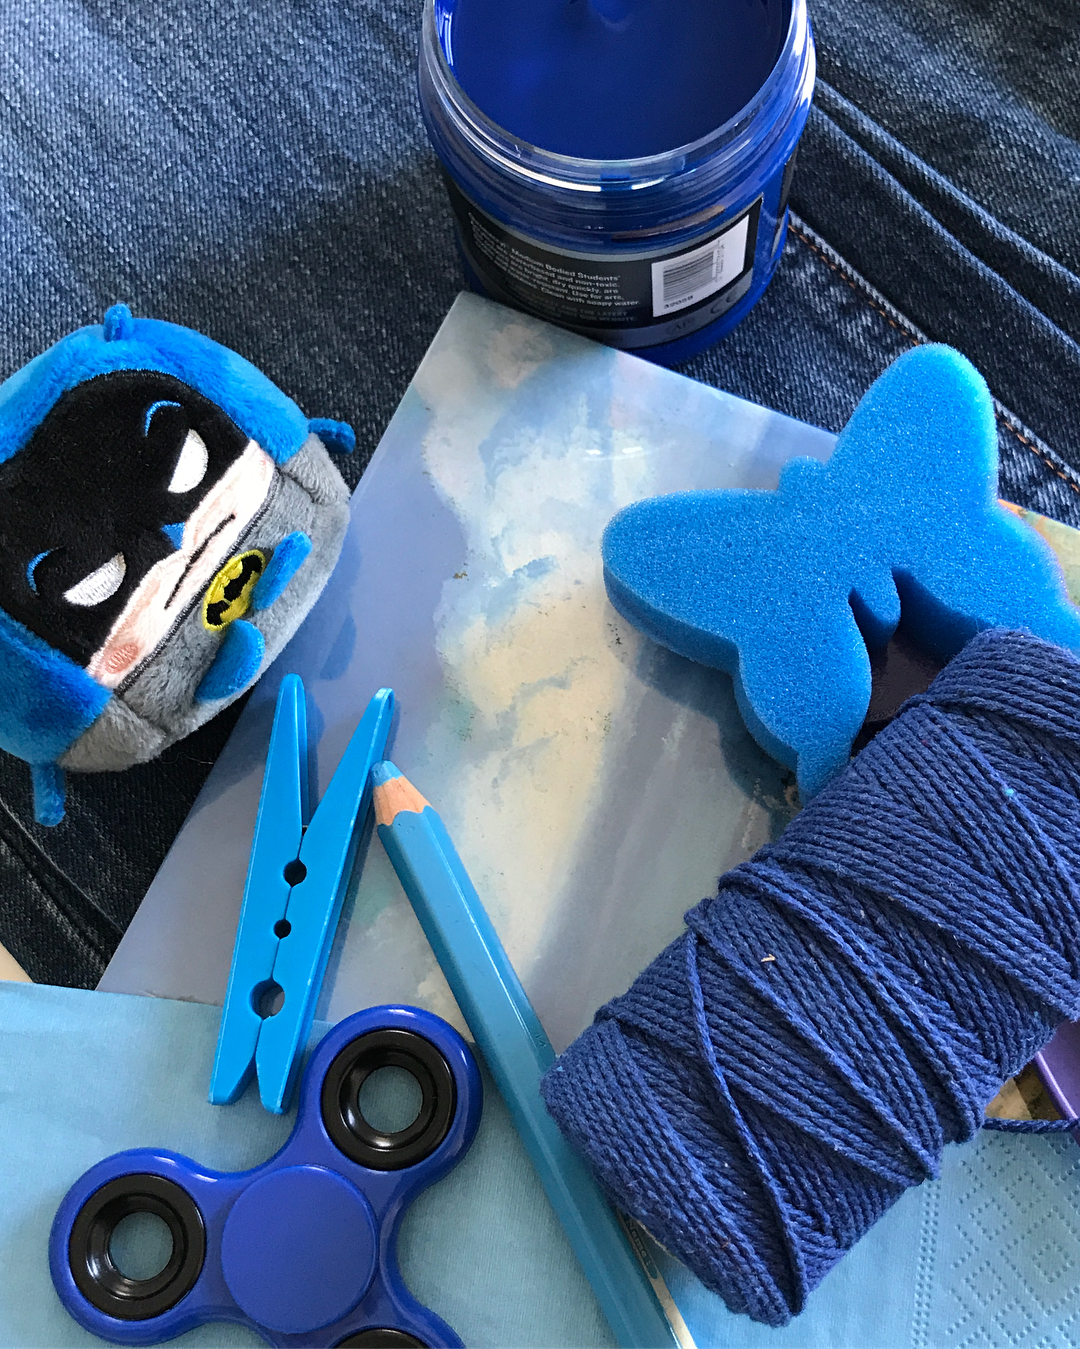 A collection of blue items ready to be used at one of our art classes! Les Petits Painters holds art classes for kids in the neighborhoods of Chatswood, Hunter's Hill, and Top Ryde. Ideal for preschoolers ages 3 to 5. For inquiries, call 0428880378 or visit LesPetitsPainters.com.au for more details.